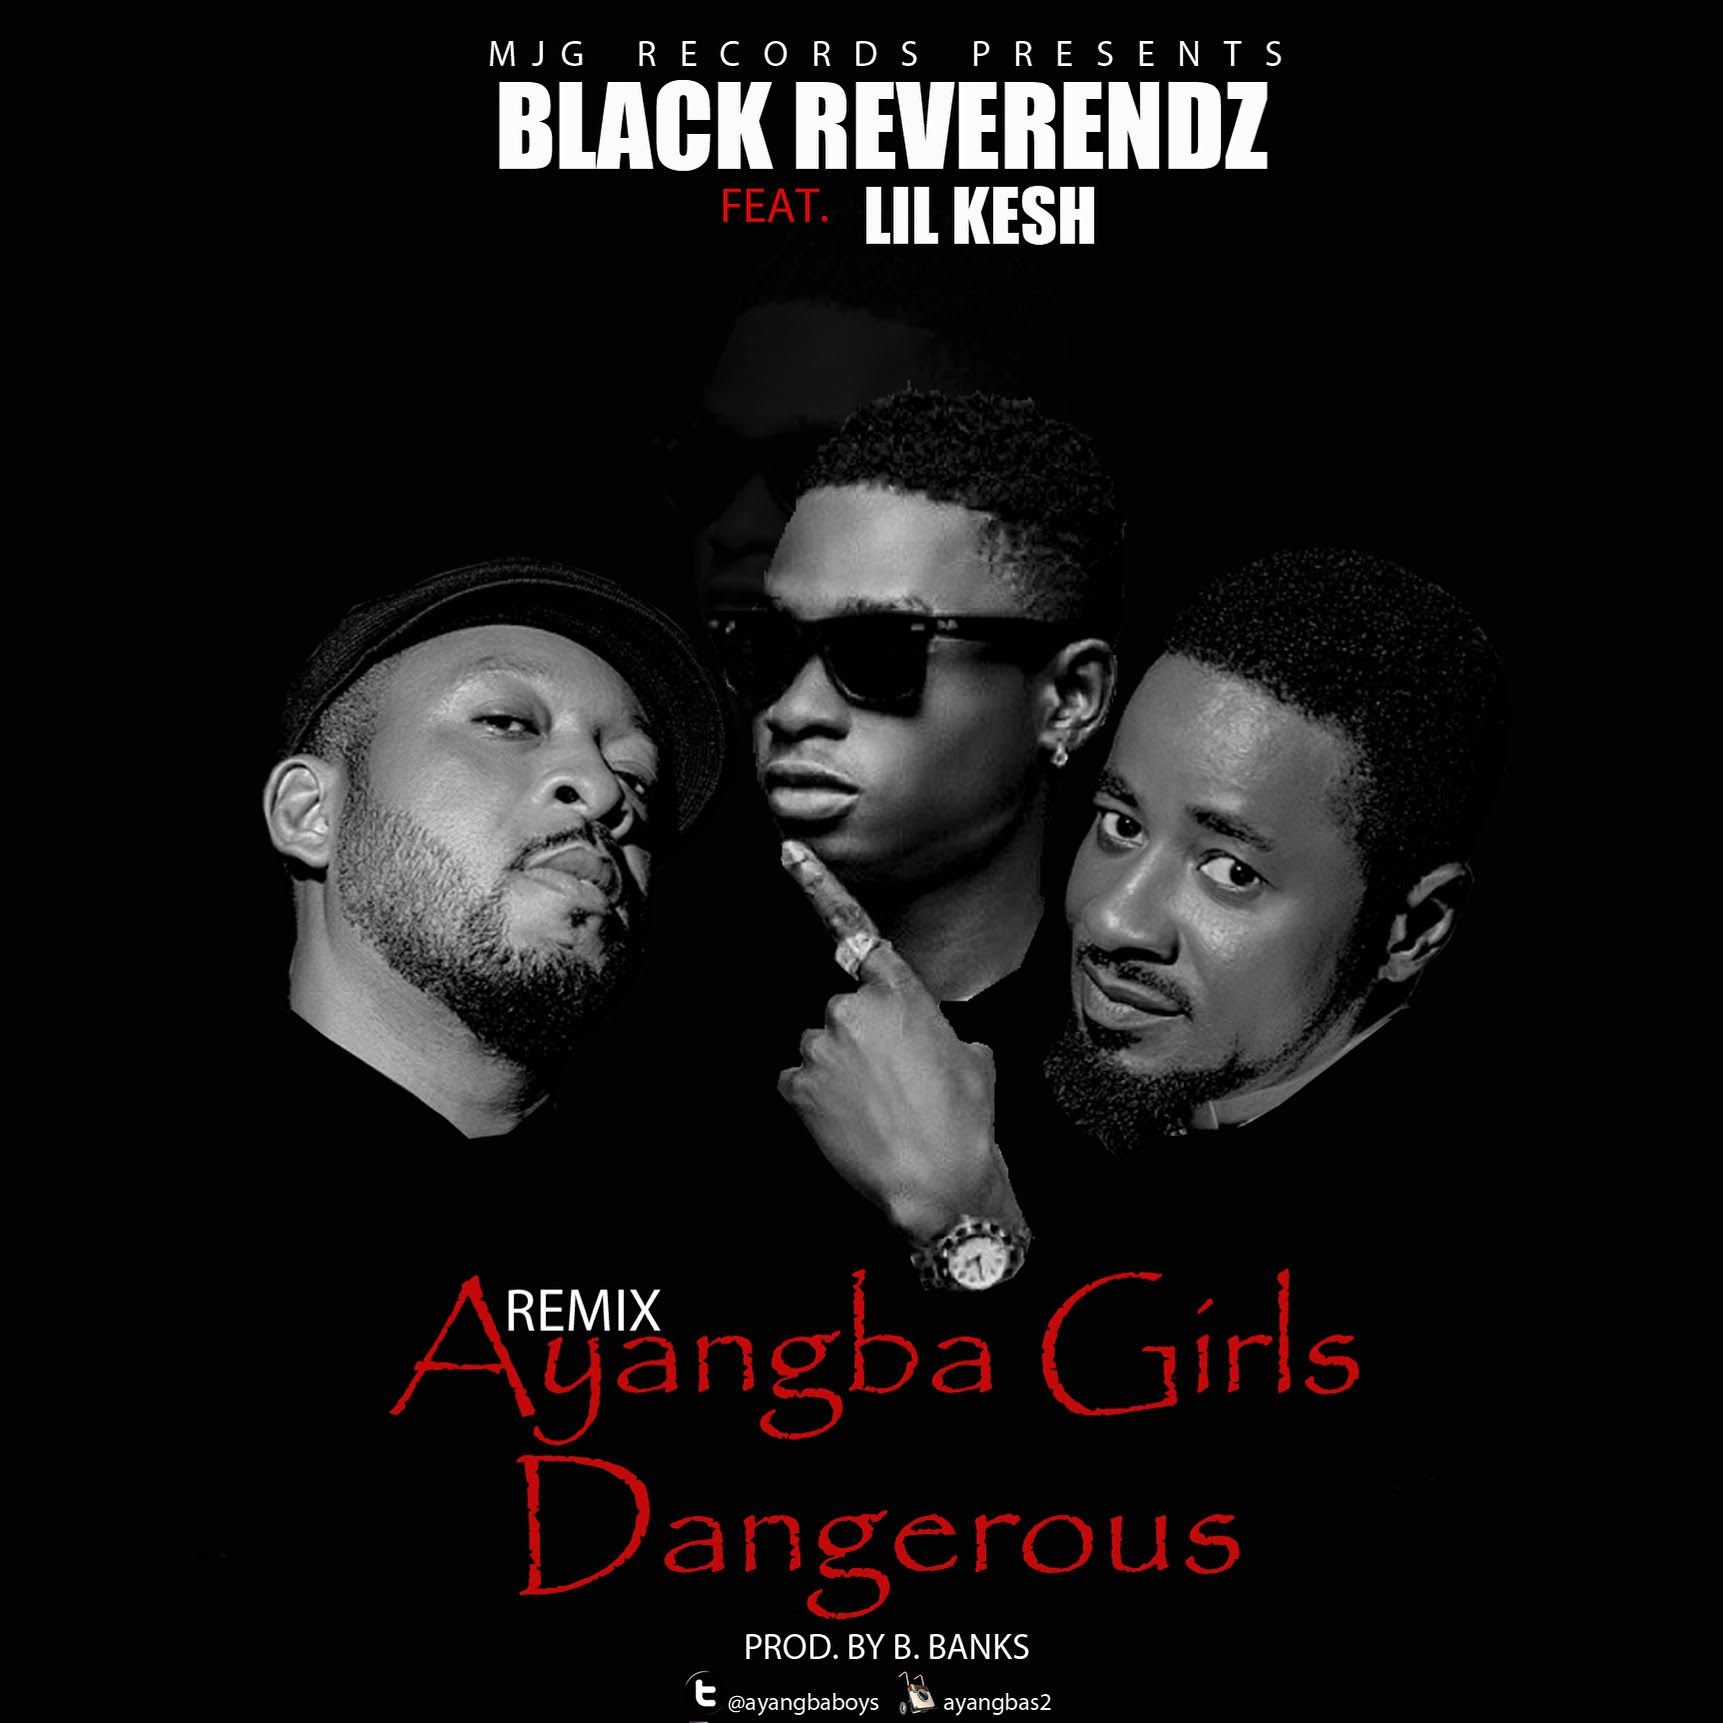 VIDEO: Black Reverendz ft. Lil Kesh - Ayangba Girls Dangerous (Remix)